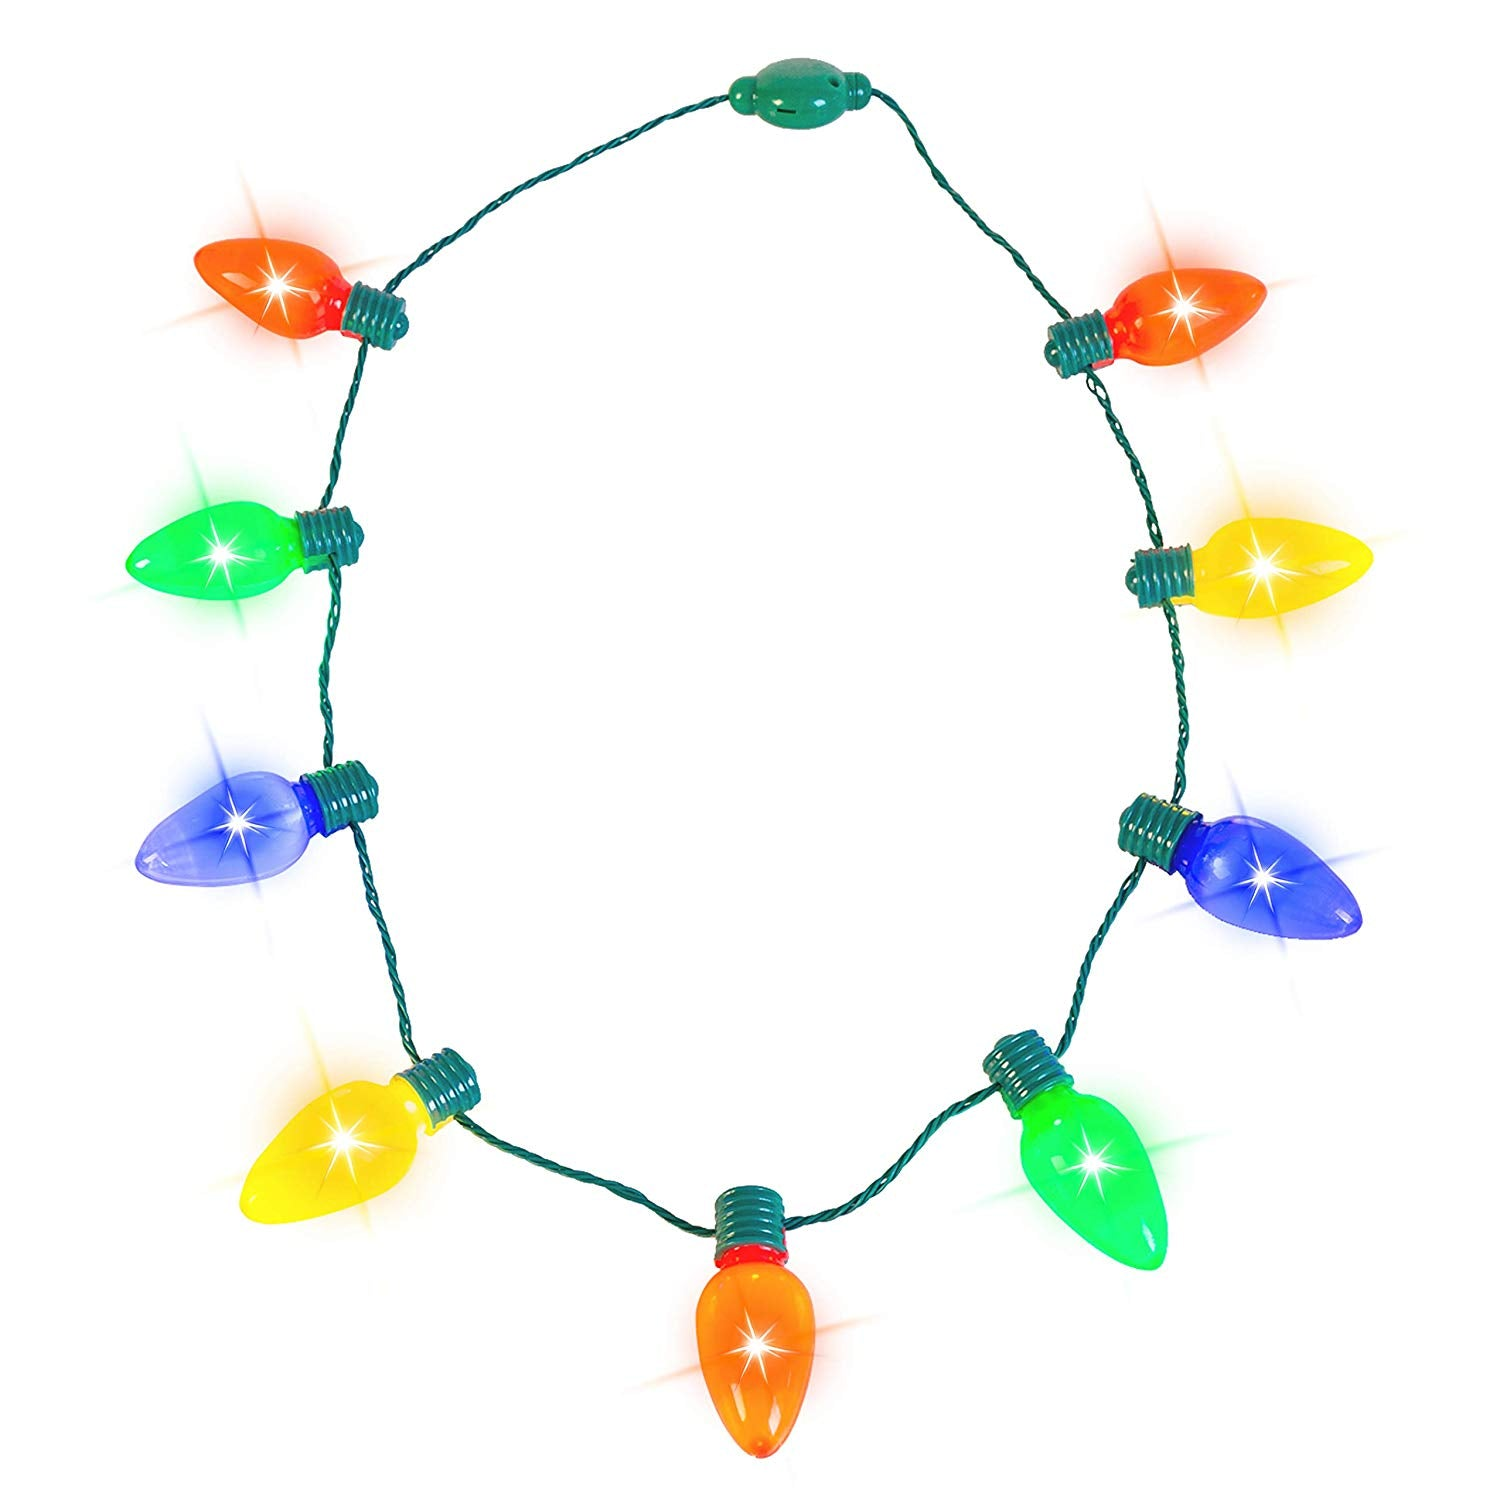 12 Piece Christmas Light Up Necklaces